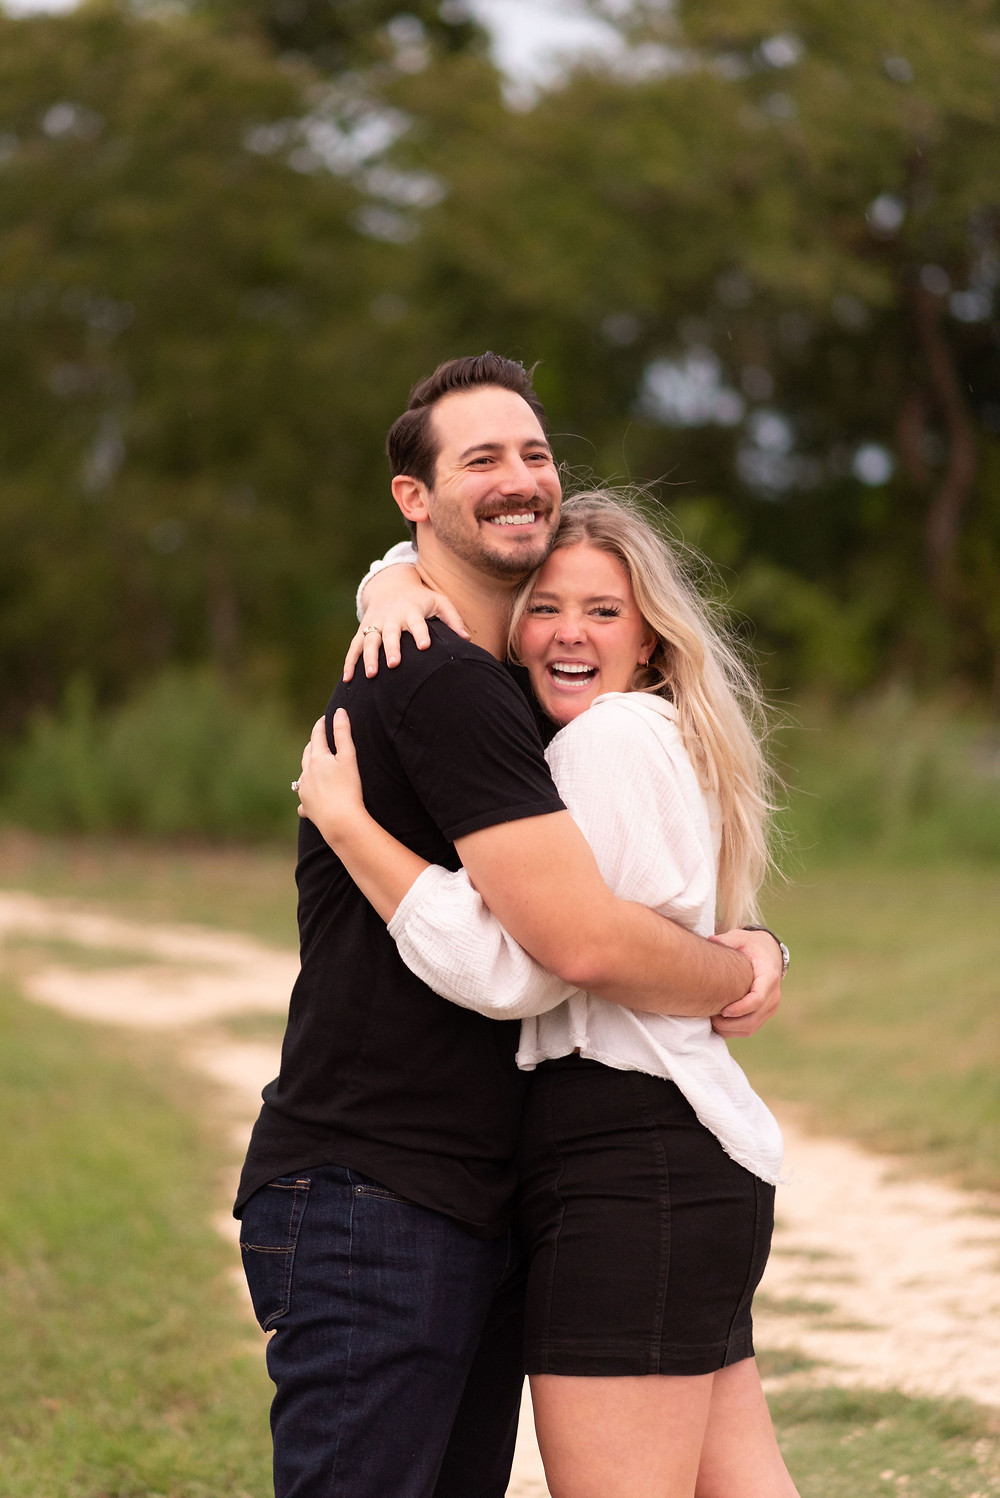 couple hugging and laughing after getting engaged